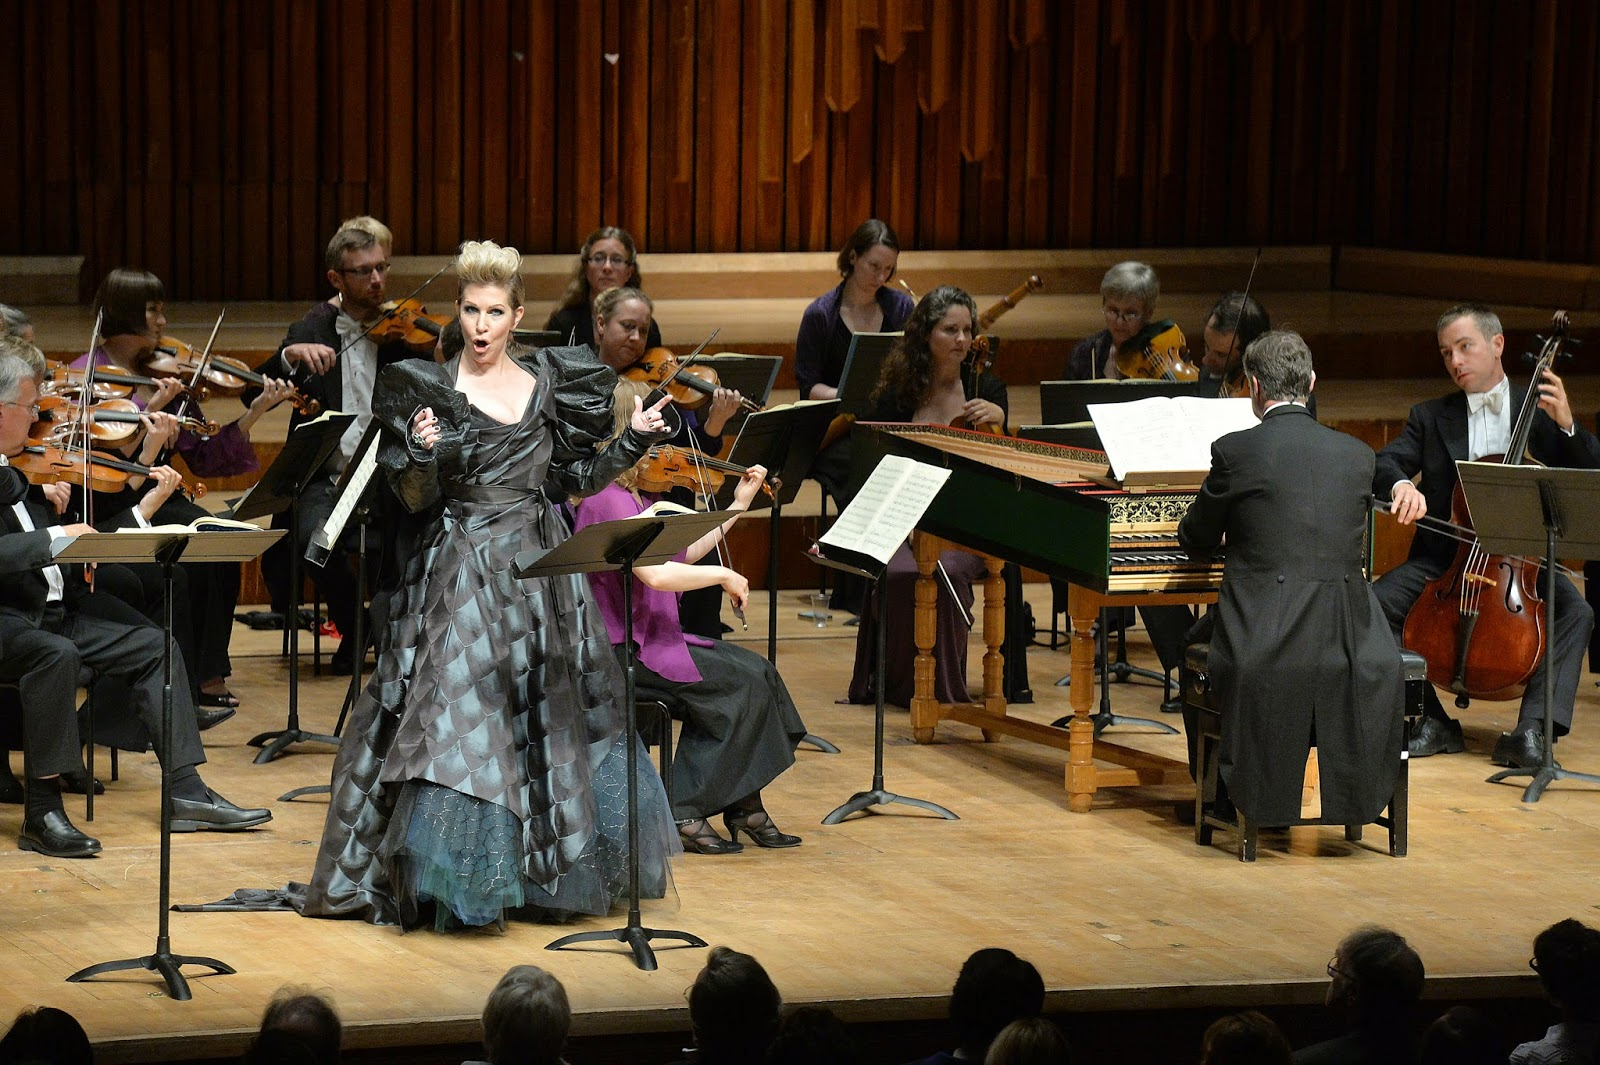 Joyce DiDonato in Act 1 of Handel's Alcina at the Barbican with the English Concert - photo credit MARK ALLAN/BARBICAN